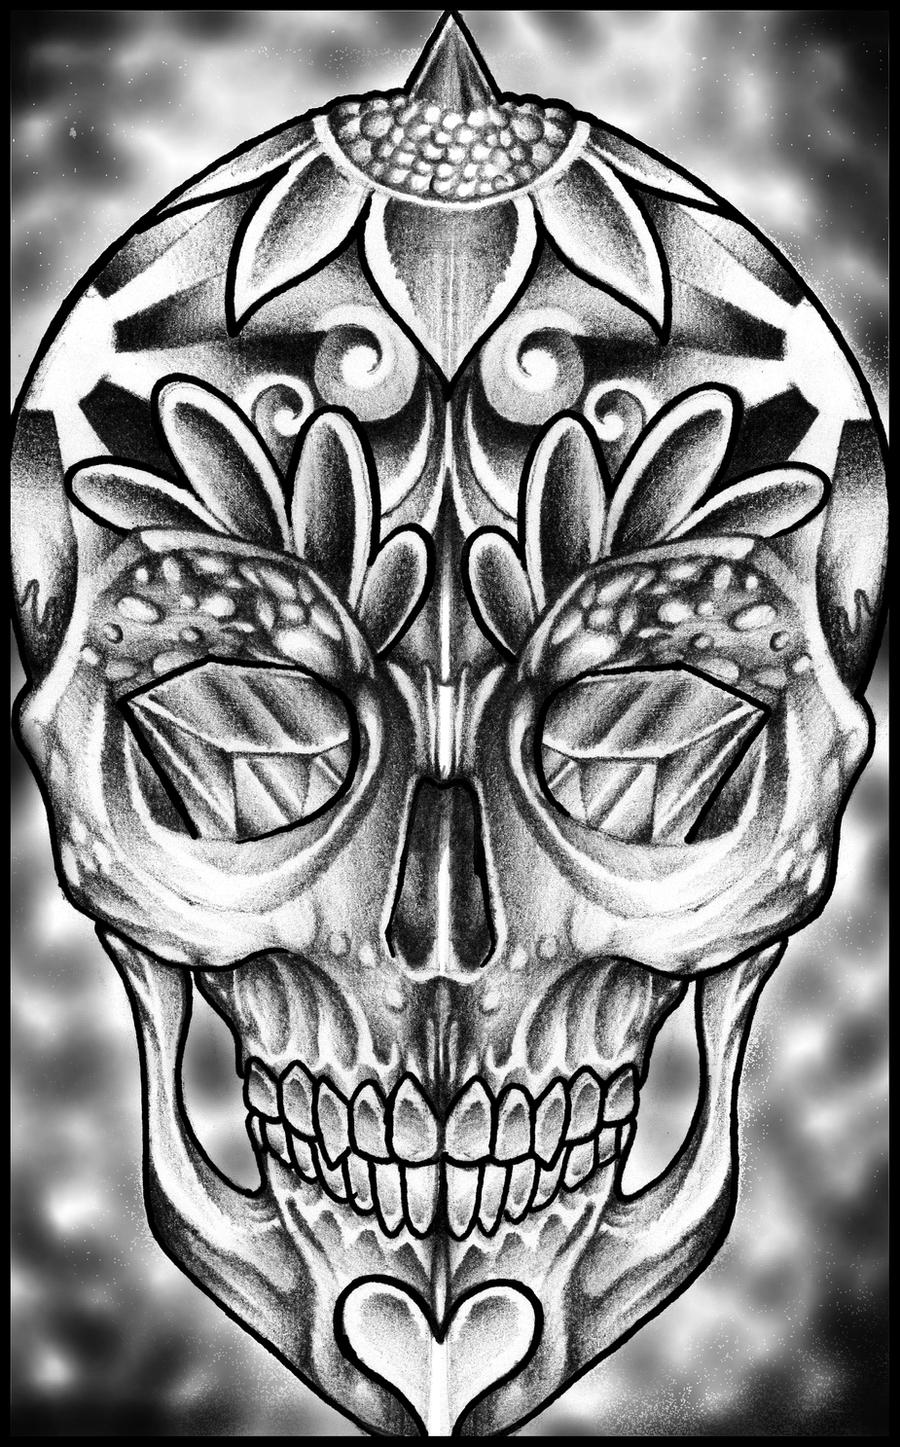 It's just a picture of Gutsy Black And White Sugar Skull Drawing